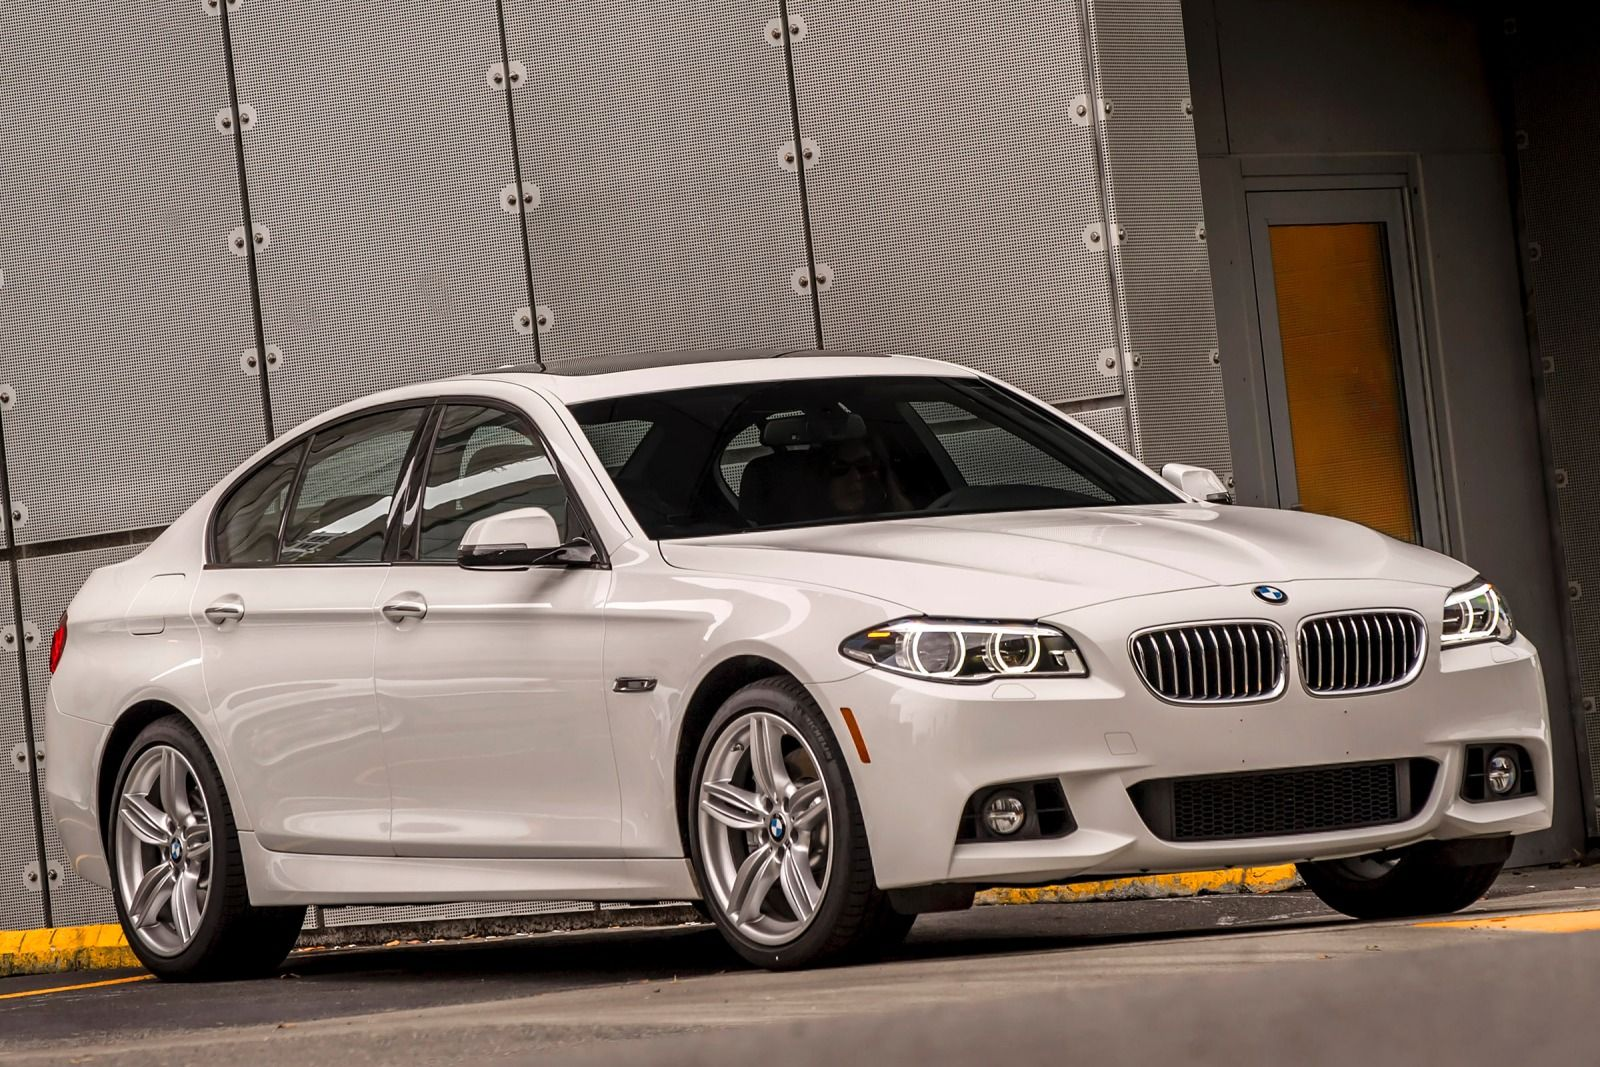 Preview: 2015 BMW 5 Series #6054 | Cars Performance, Reviews, and